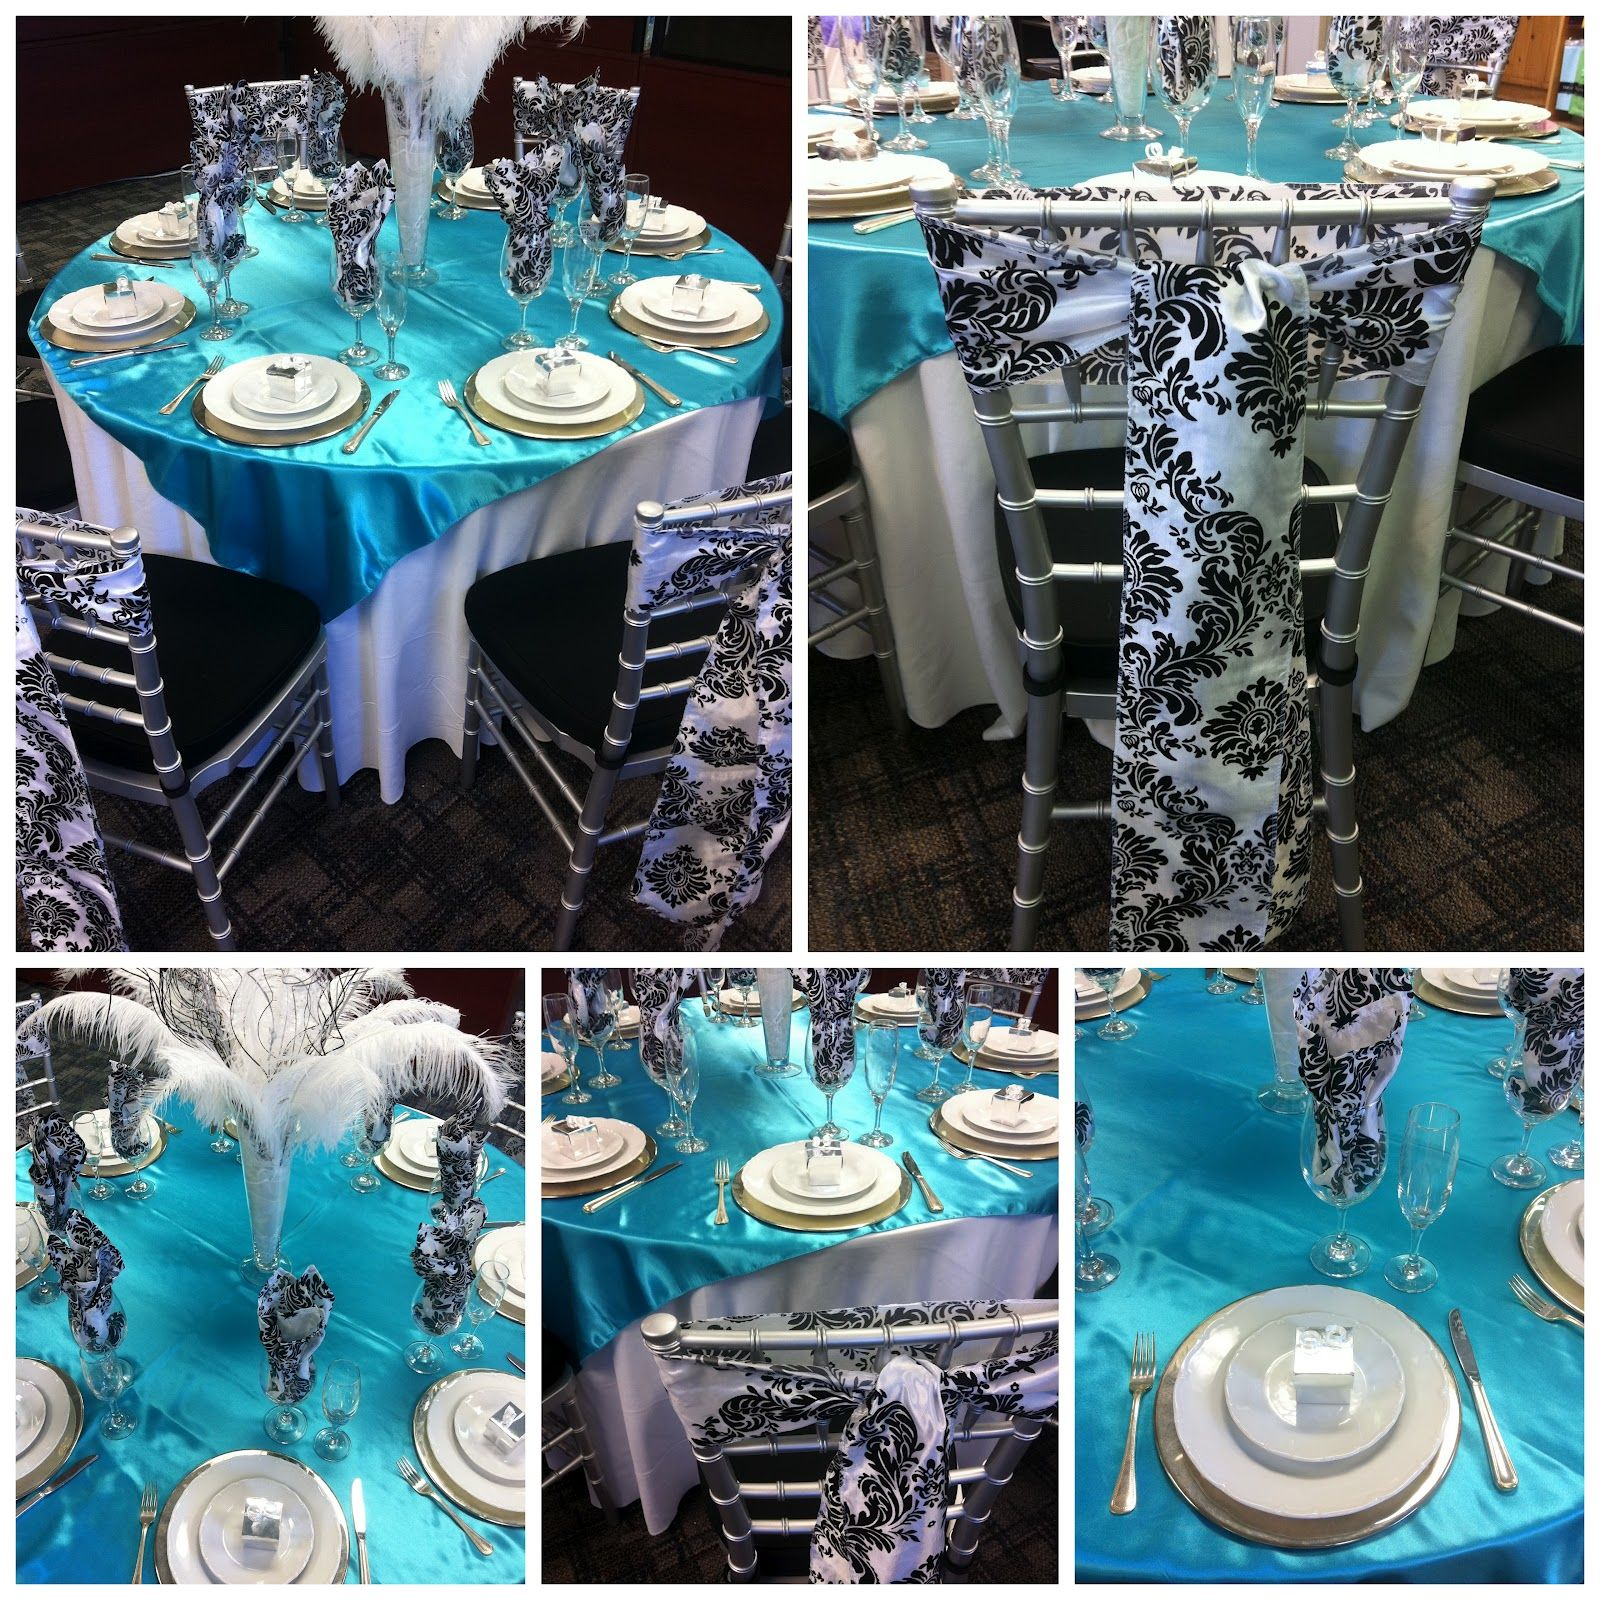 Turquoise And White Wedding Decorations Party Decorations For A Banquet With Turquoise Black And